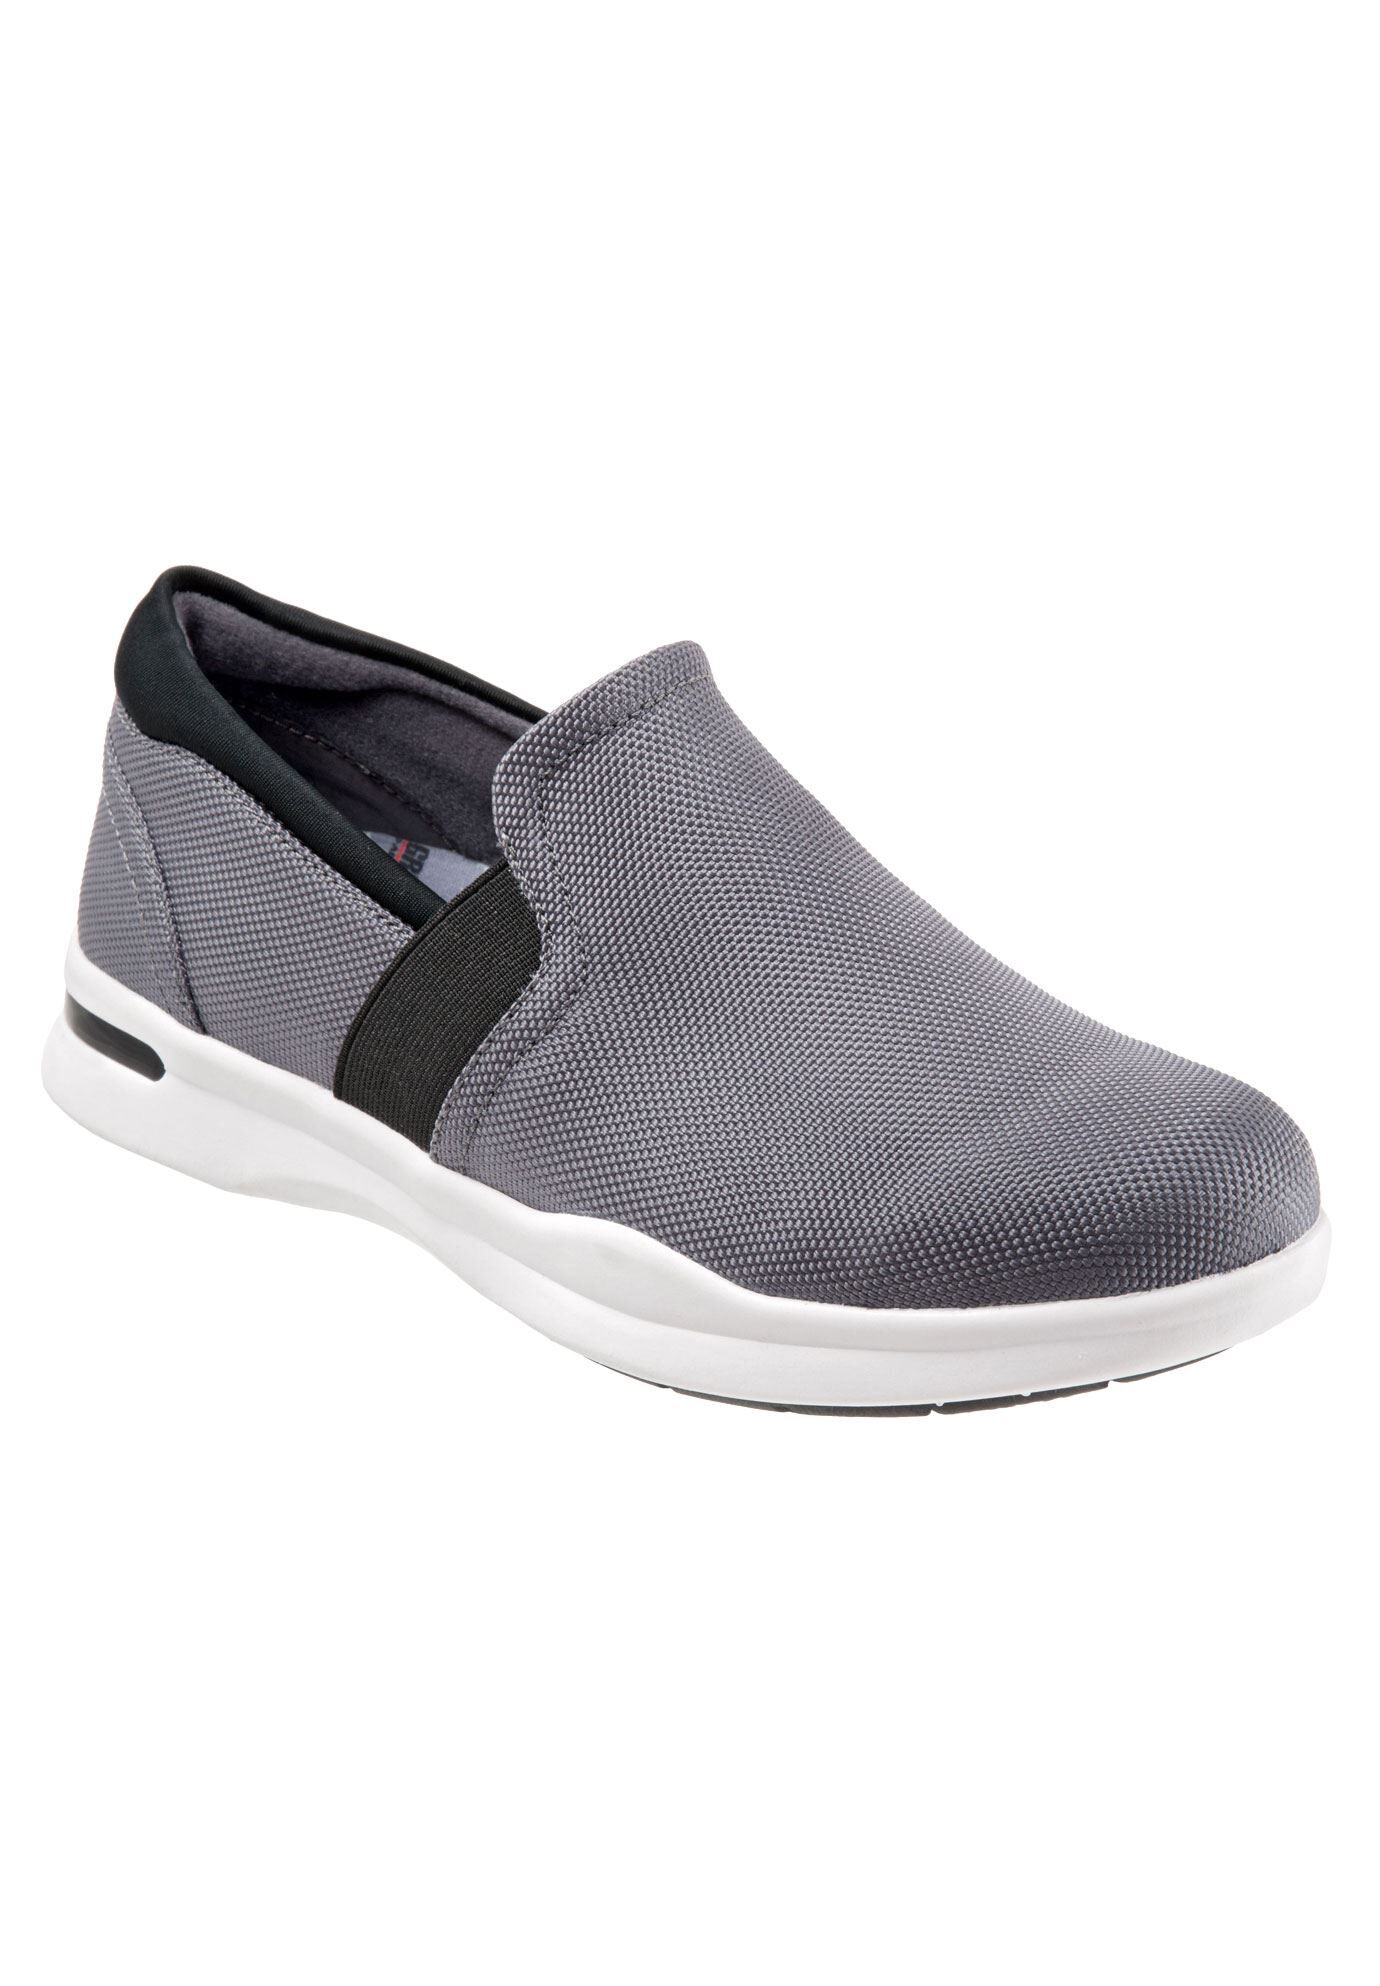 SoftWalk Vantage Microfabric Sneakers F8TGL99NF